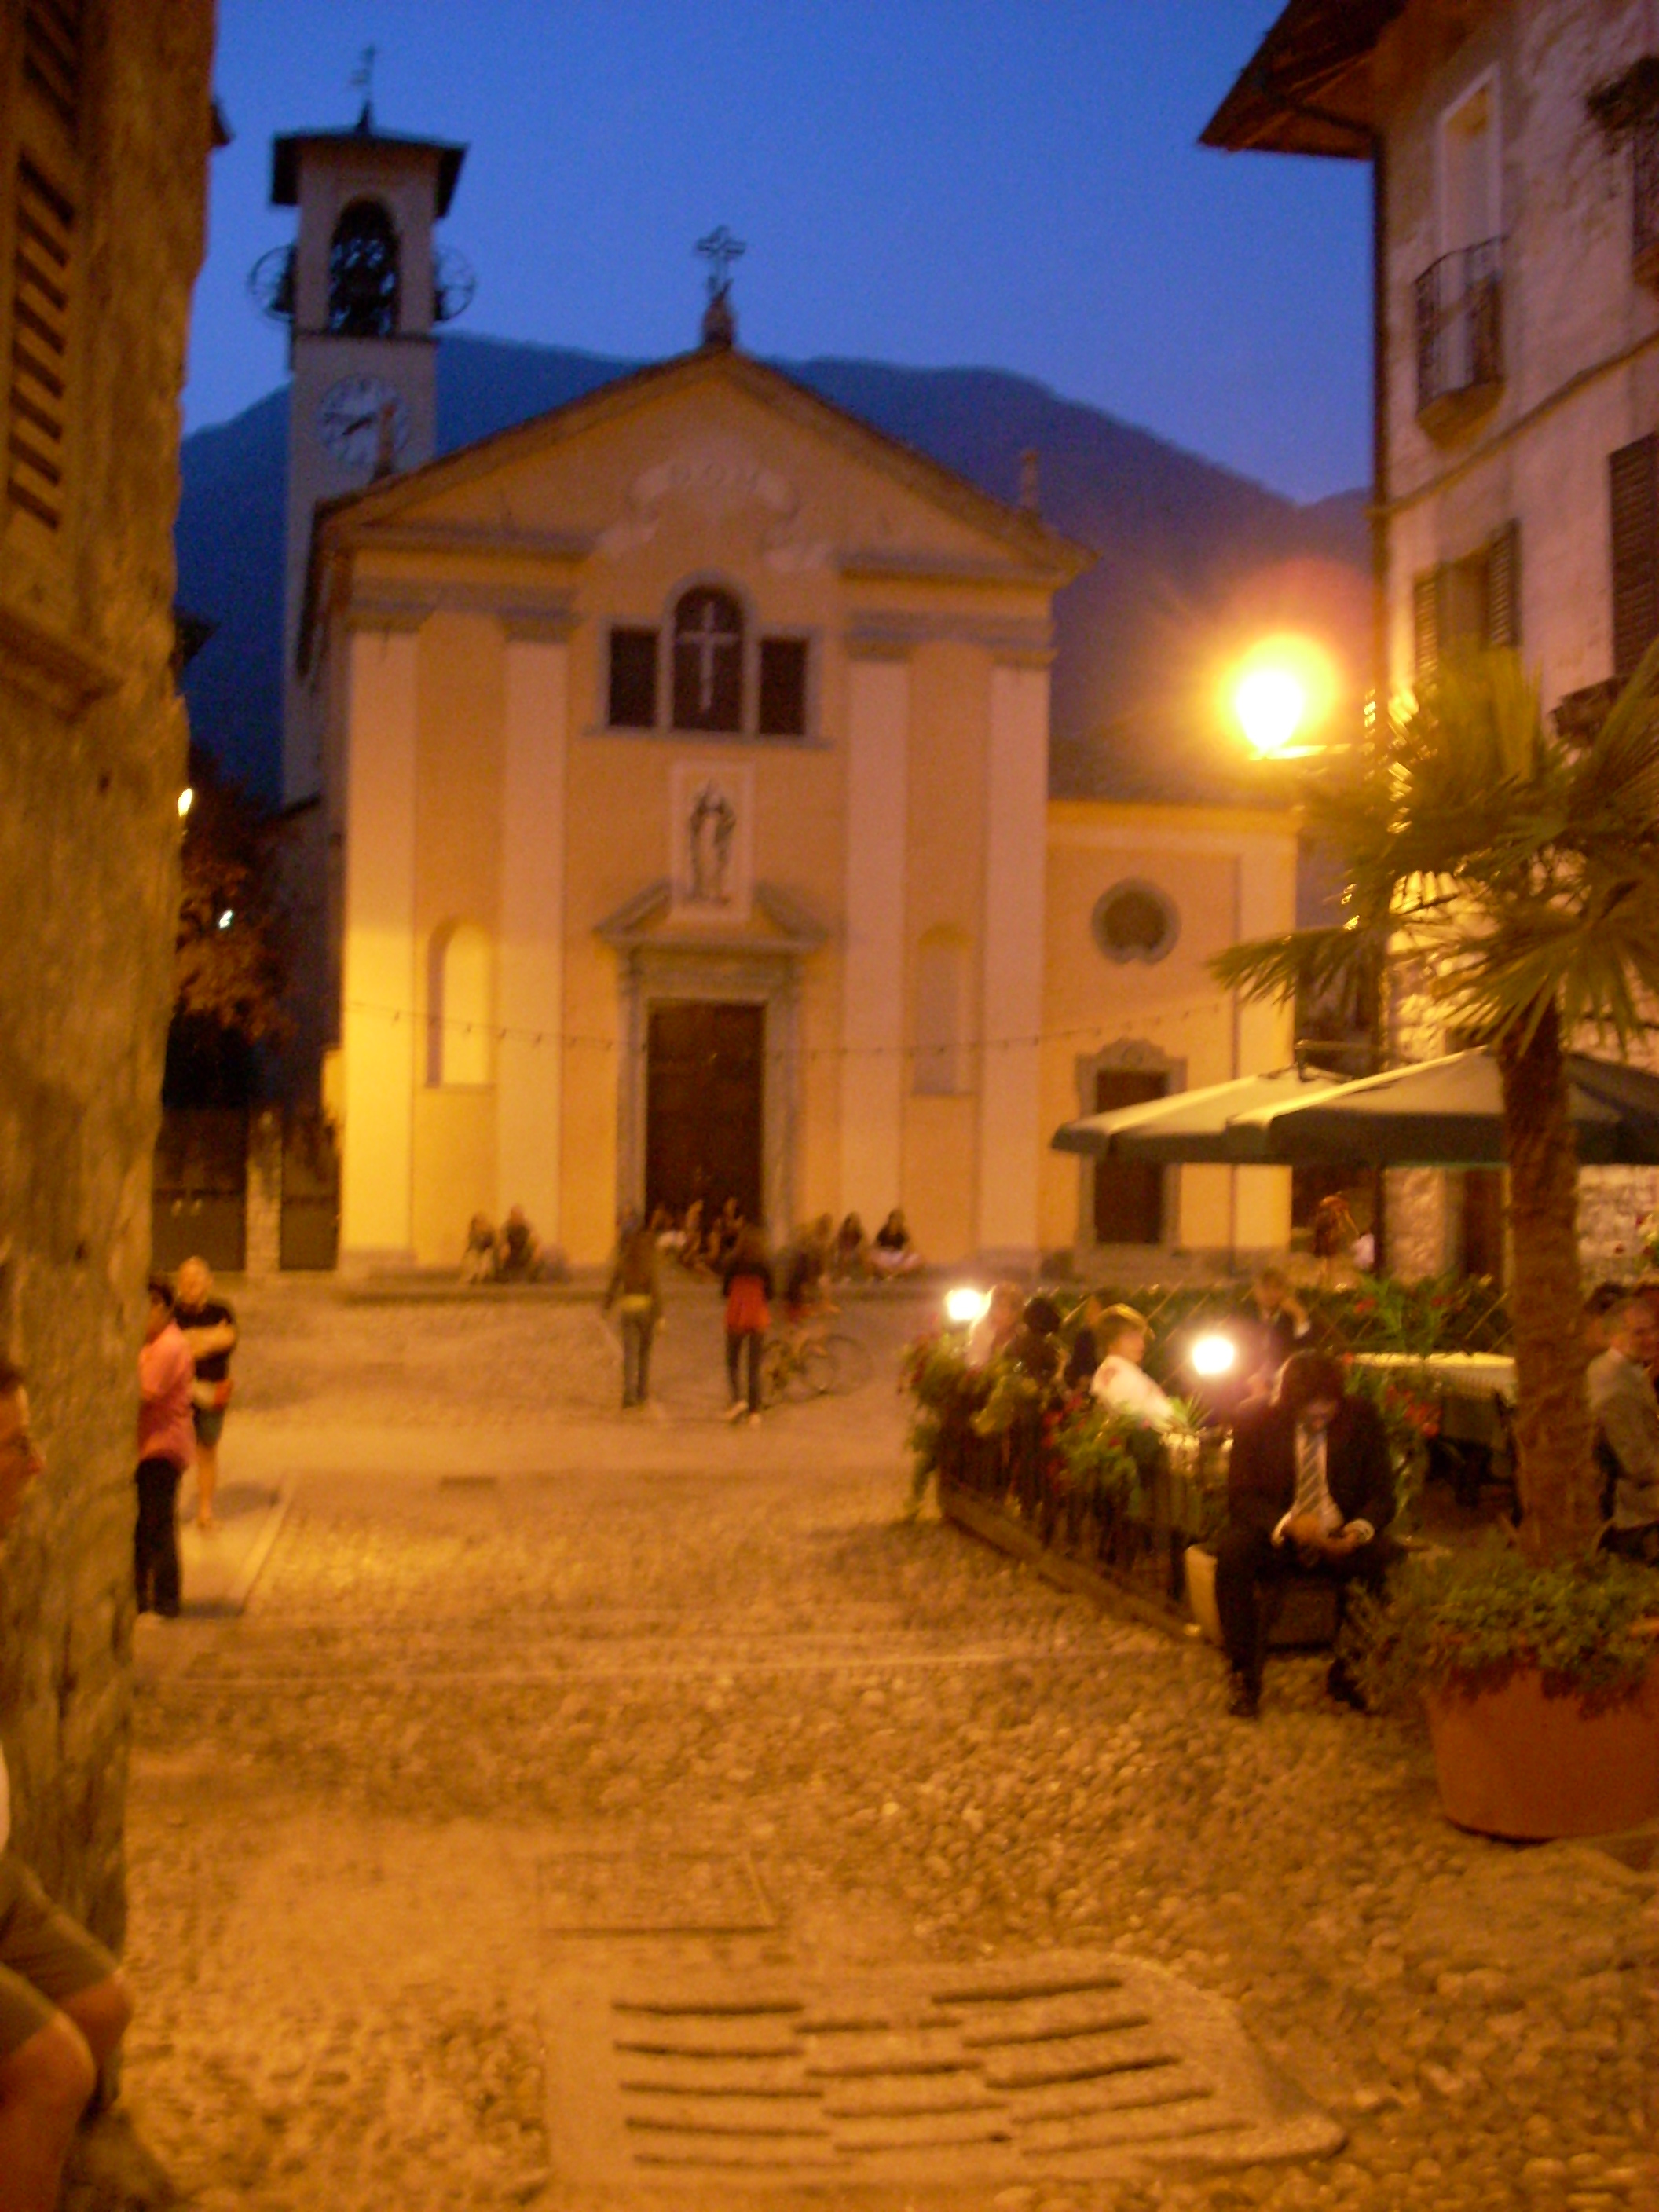 Faggeto Lario Italy  City new picture : Molina di Faggeto Lario Wikipedia